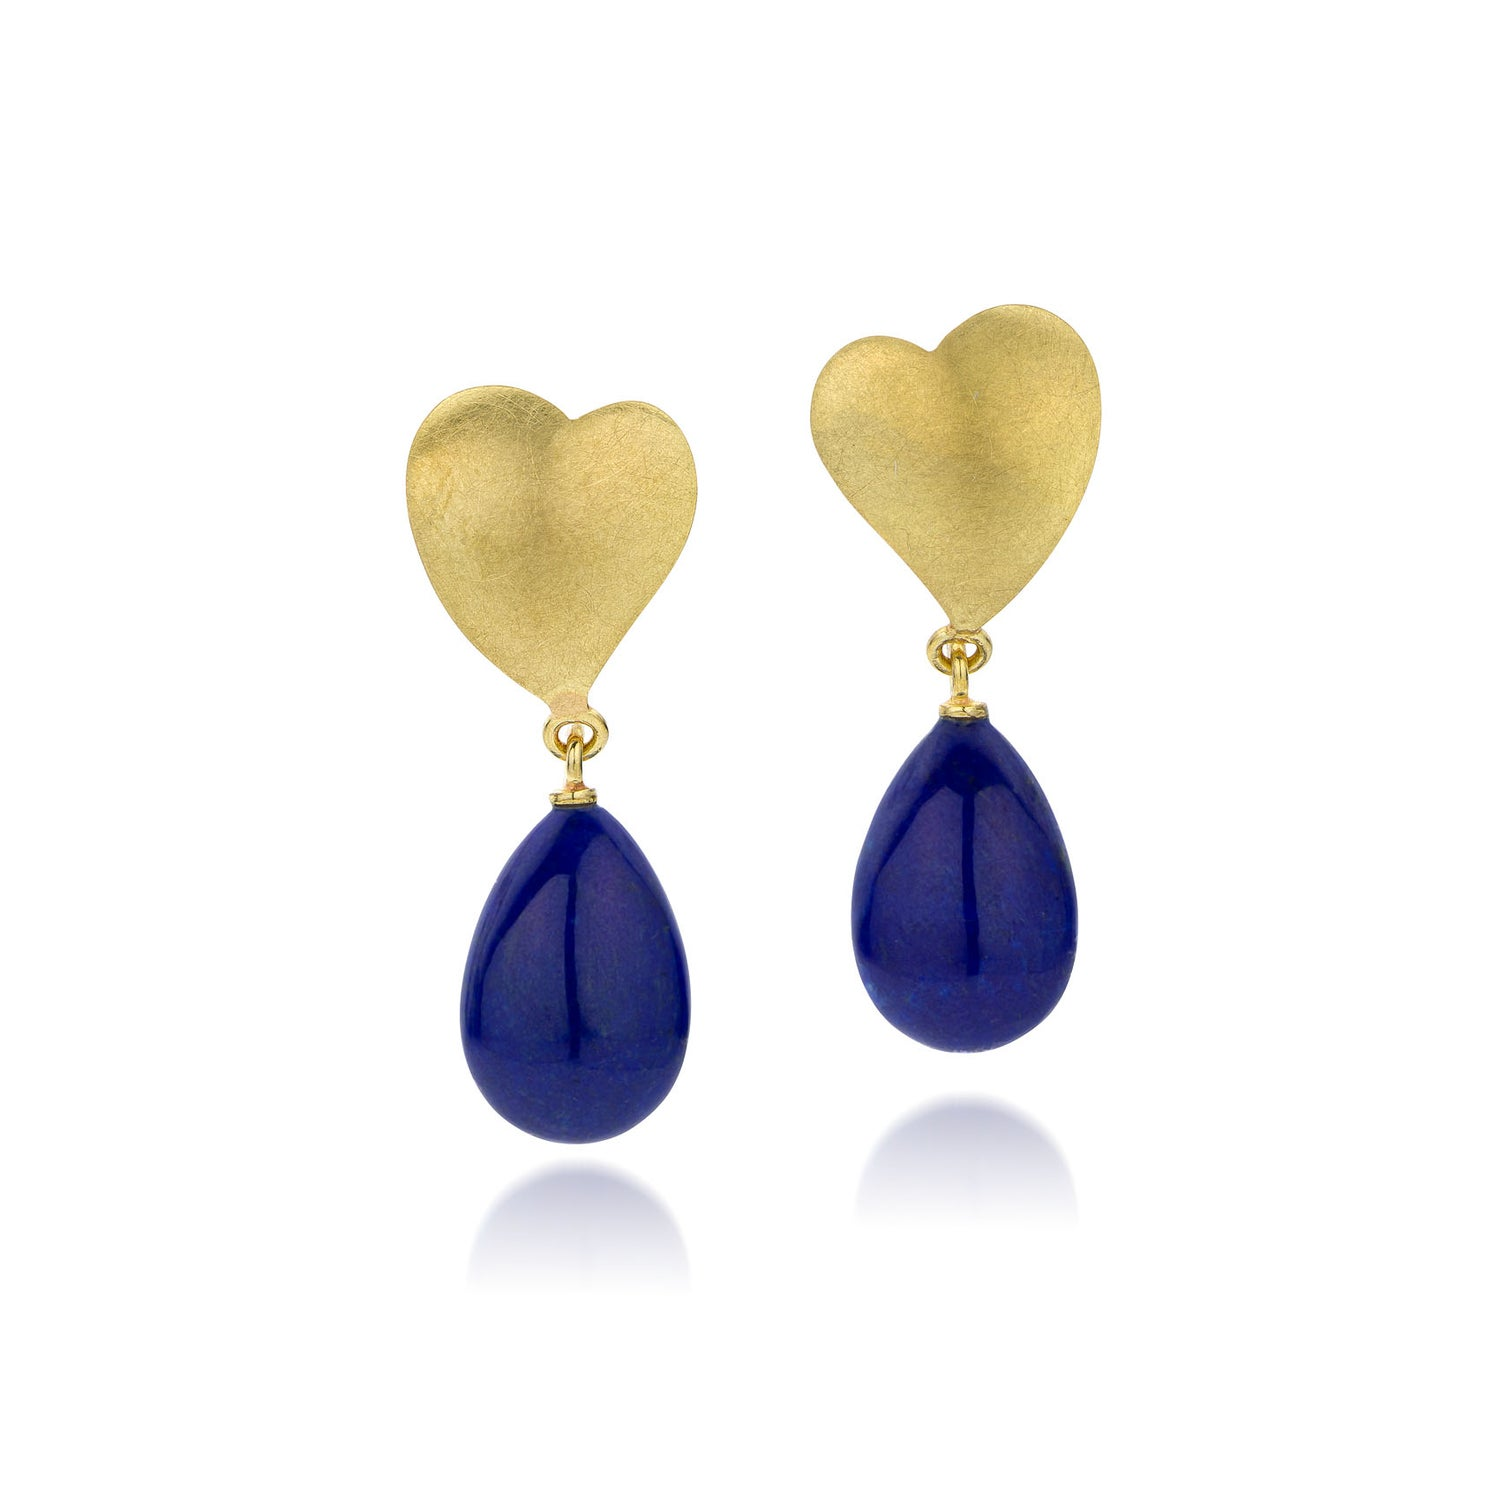 Image of hartjes oorringen goud, lapis lazuli - earrings gold, lapis